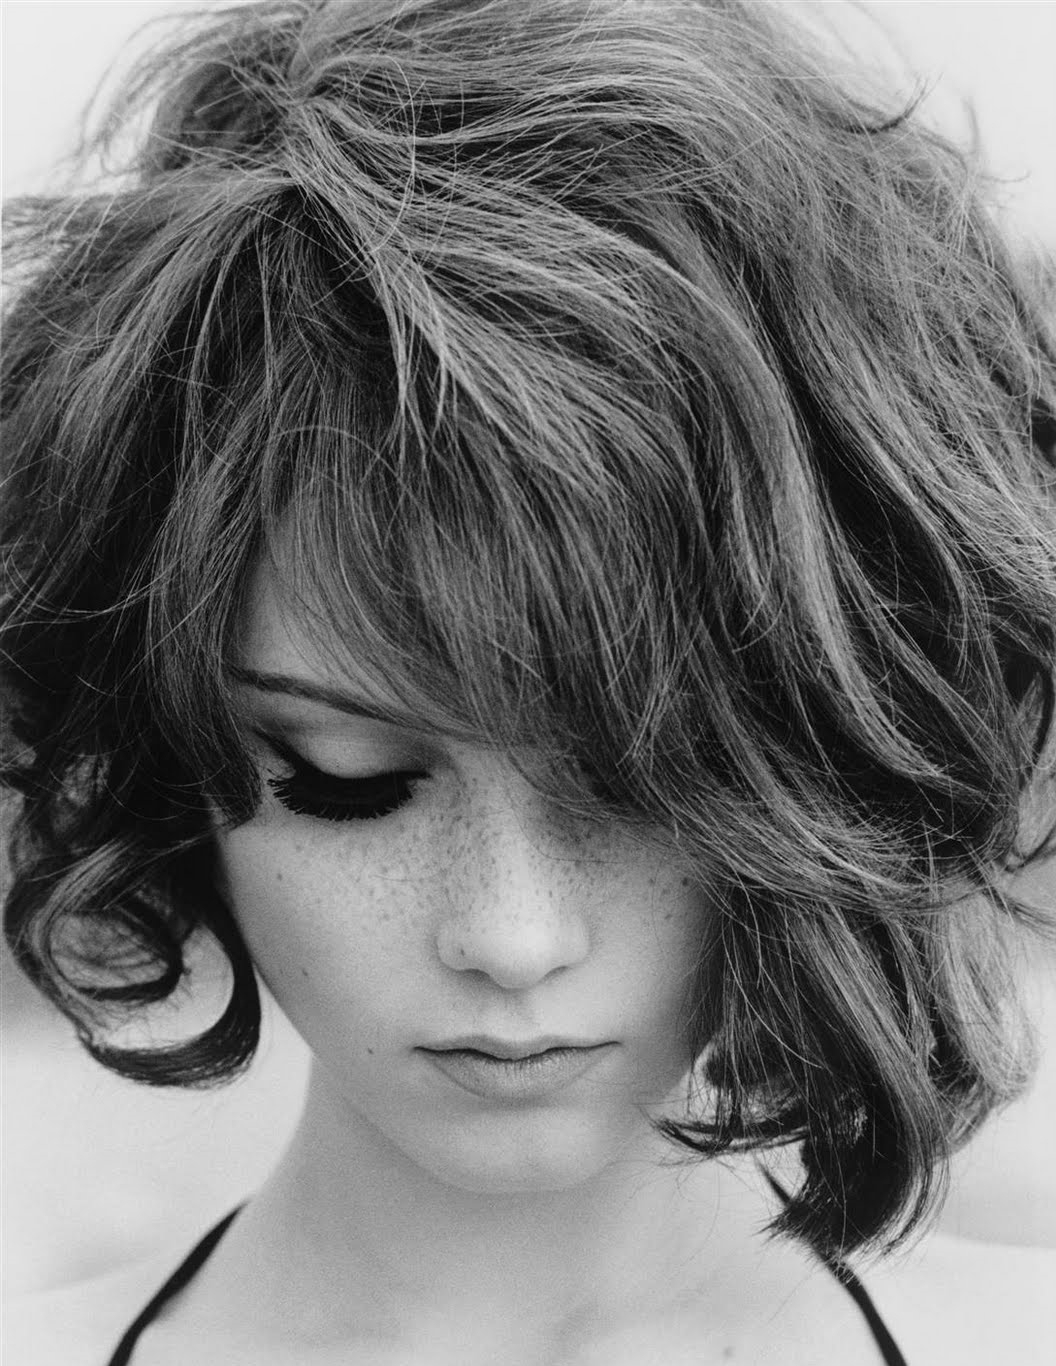 Short Hairstyles For Fat Faces 2017 – Hairstyles Ideas Intended For Black Short Hairstyles For Long Faces (View 21 of 25)